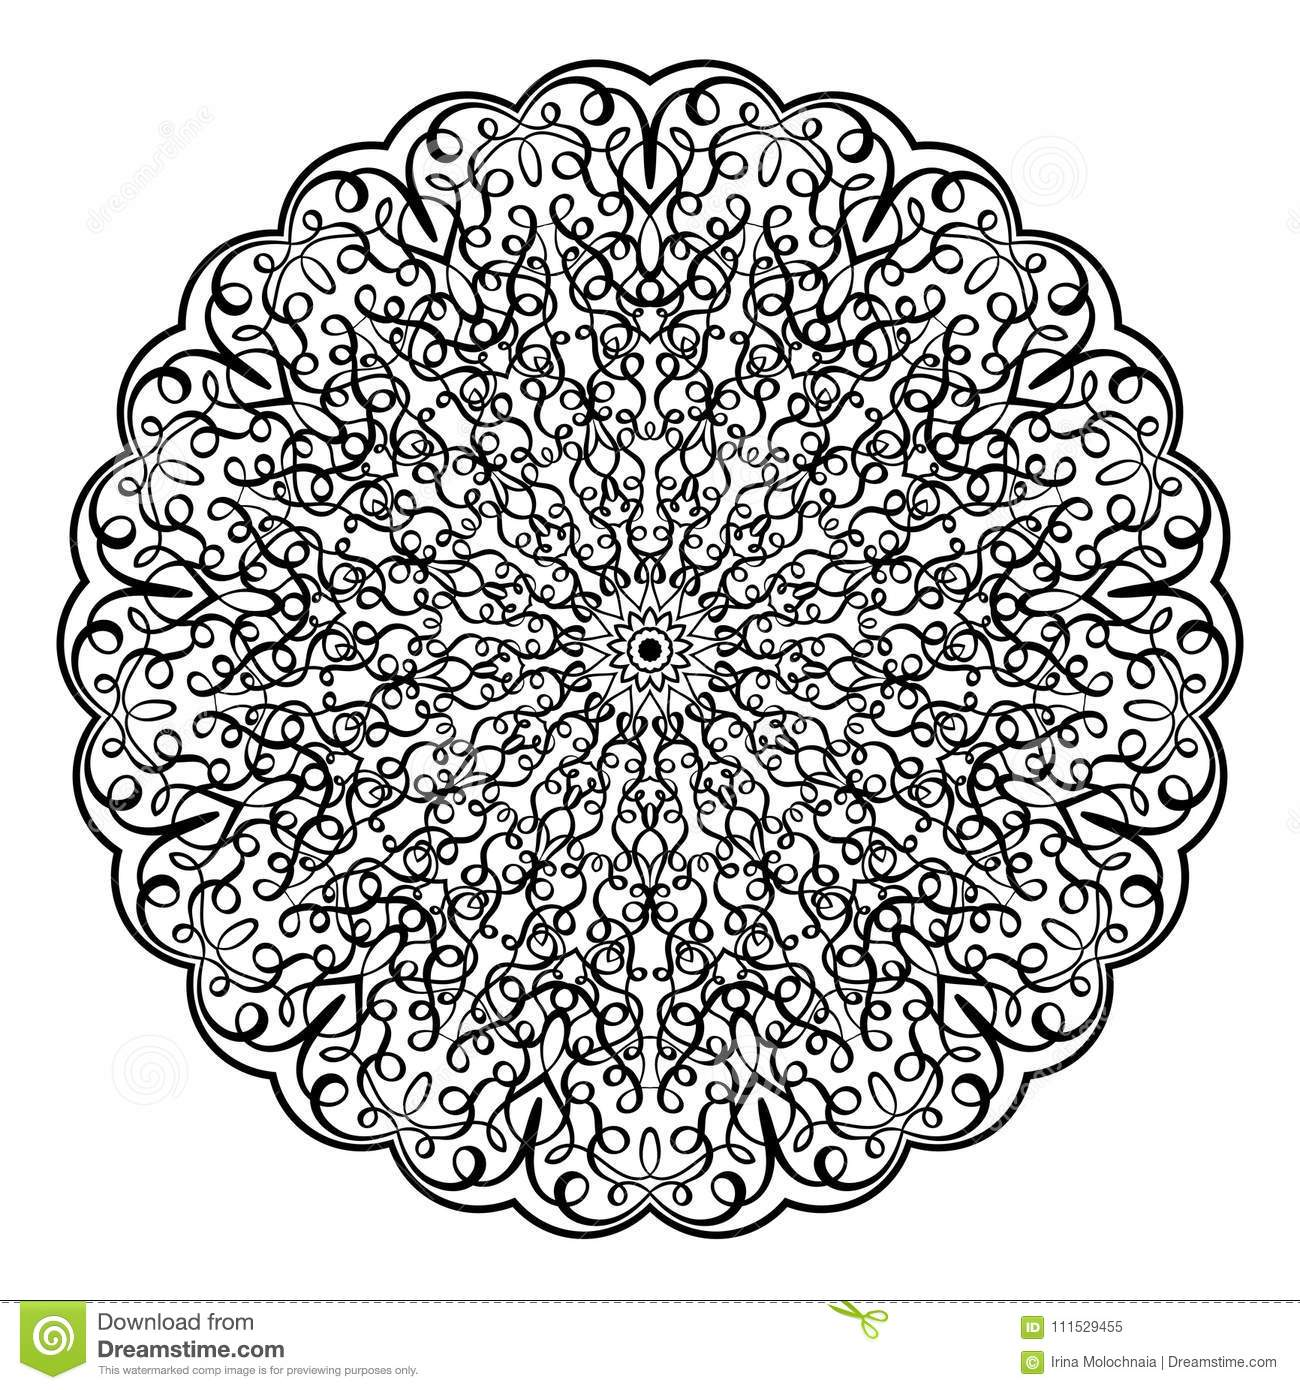 Download Adult Coloring Book IllustrationLacy Mandala Pattern With Calligraphic Swirls And Intricate Tangled Lacy Ornament